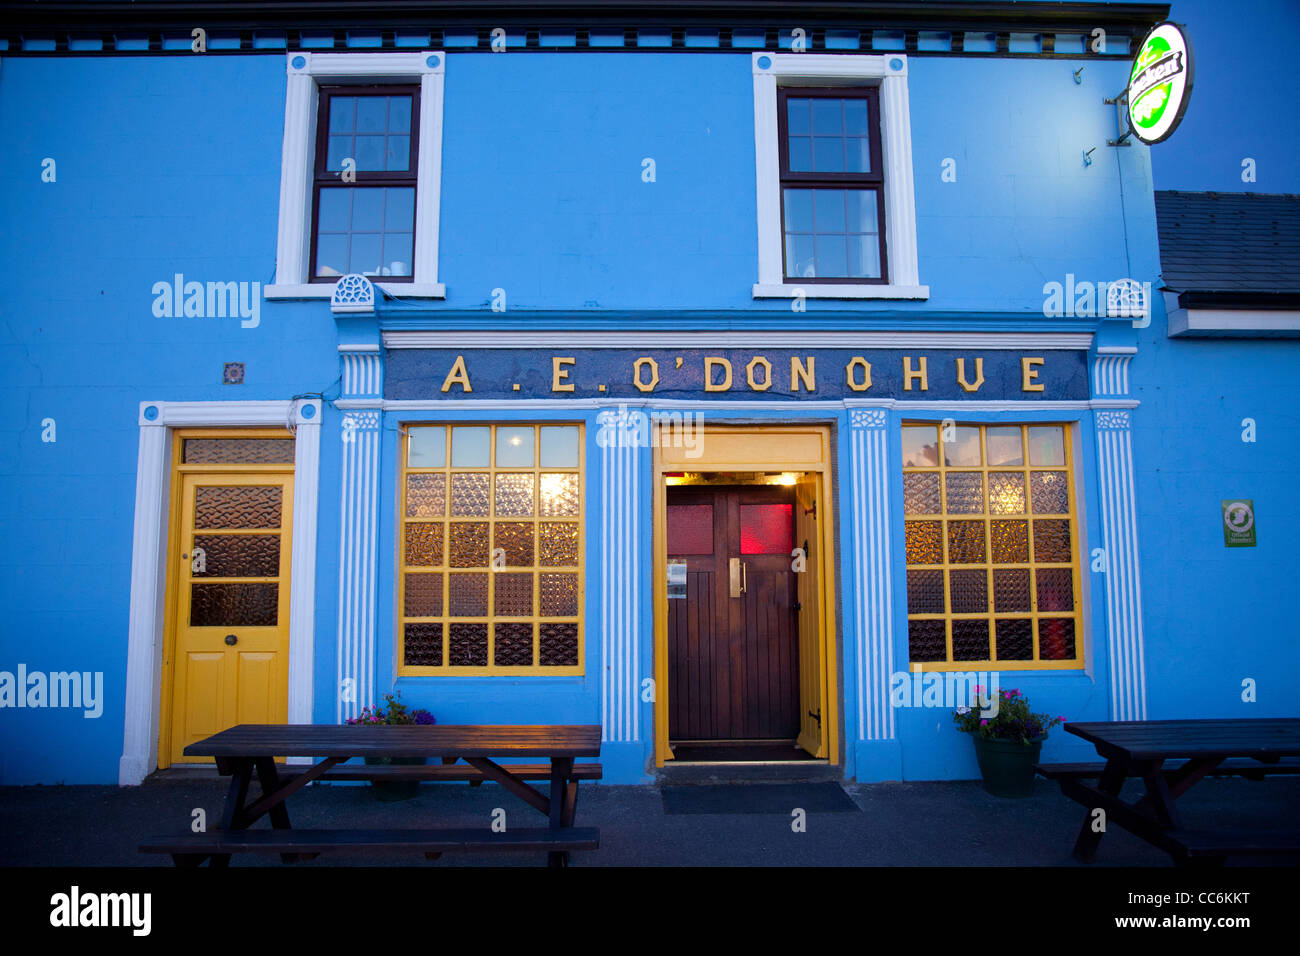 Colorful facade of O'Donohue's pub, Fanore, County Clare, Ireland. - Stock Image